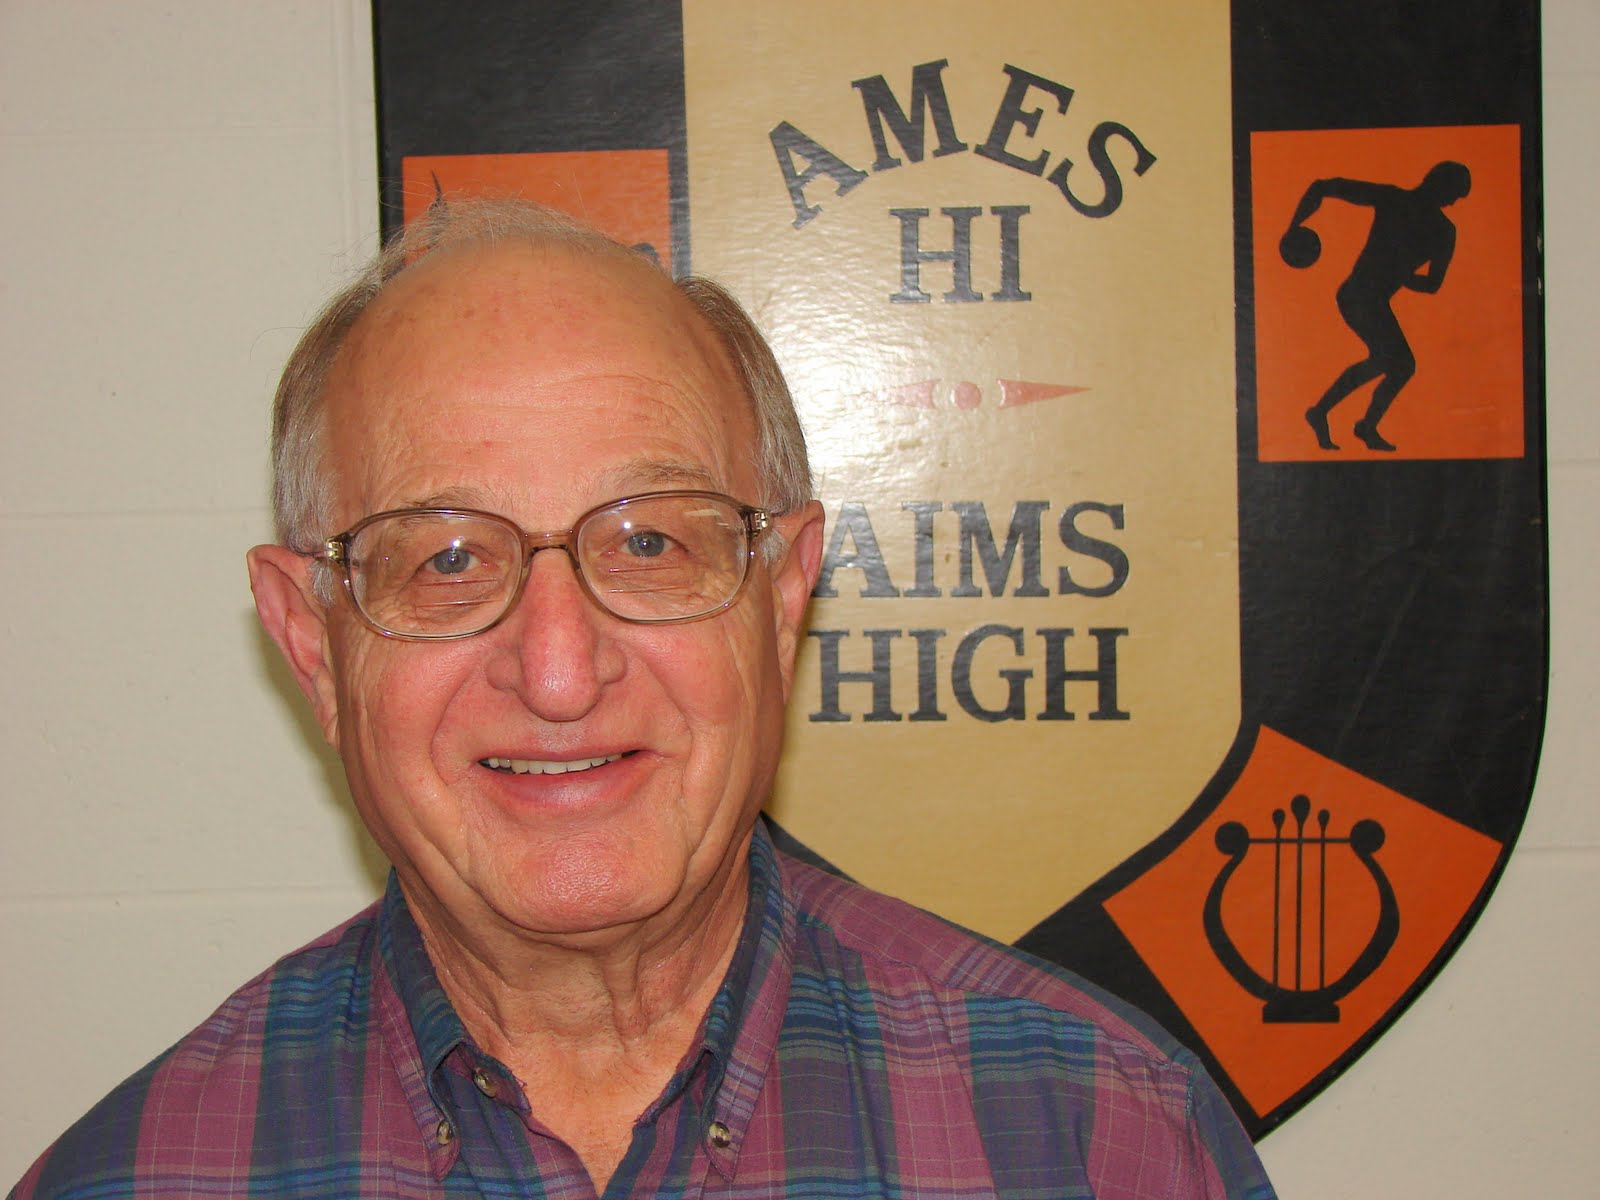 Photo: William Ripp in the AHSAA office at Ames High School  Oct 16, 2007